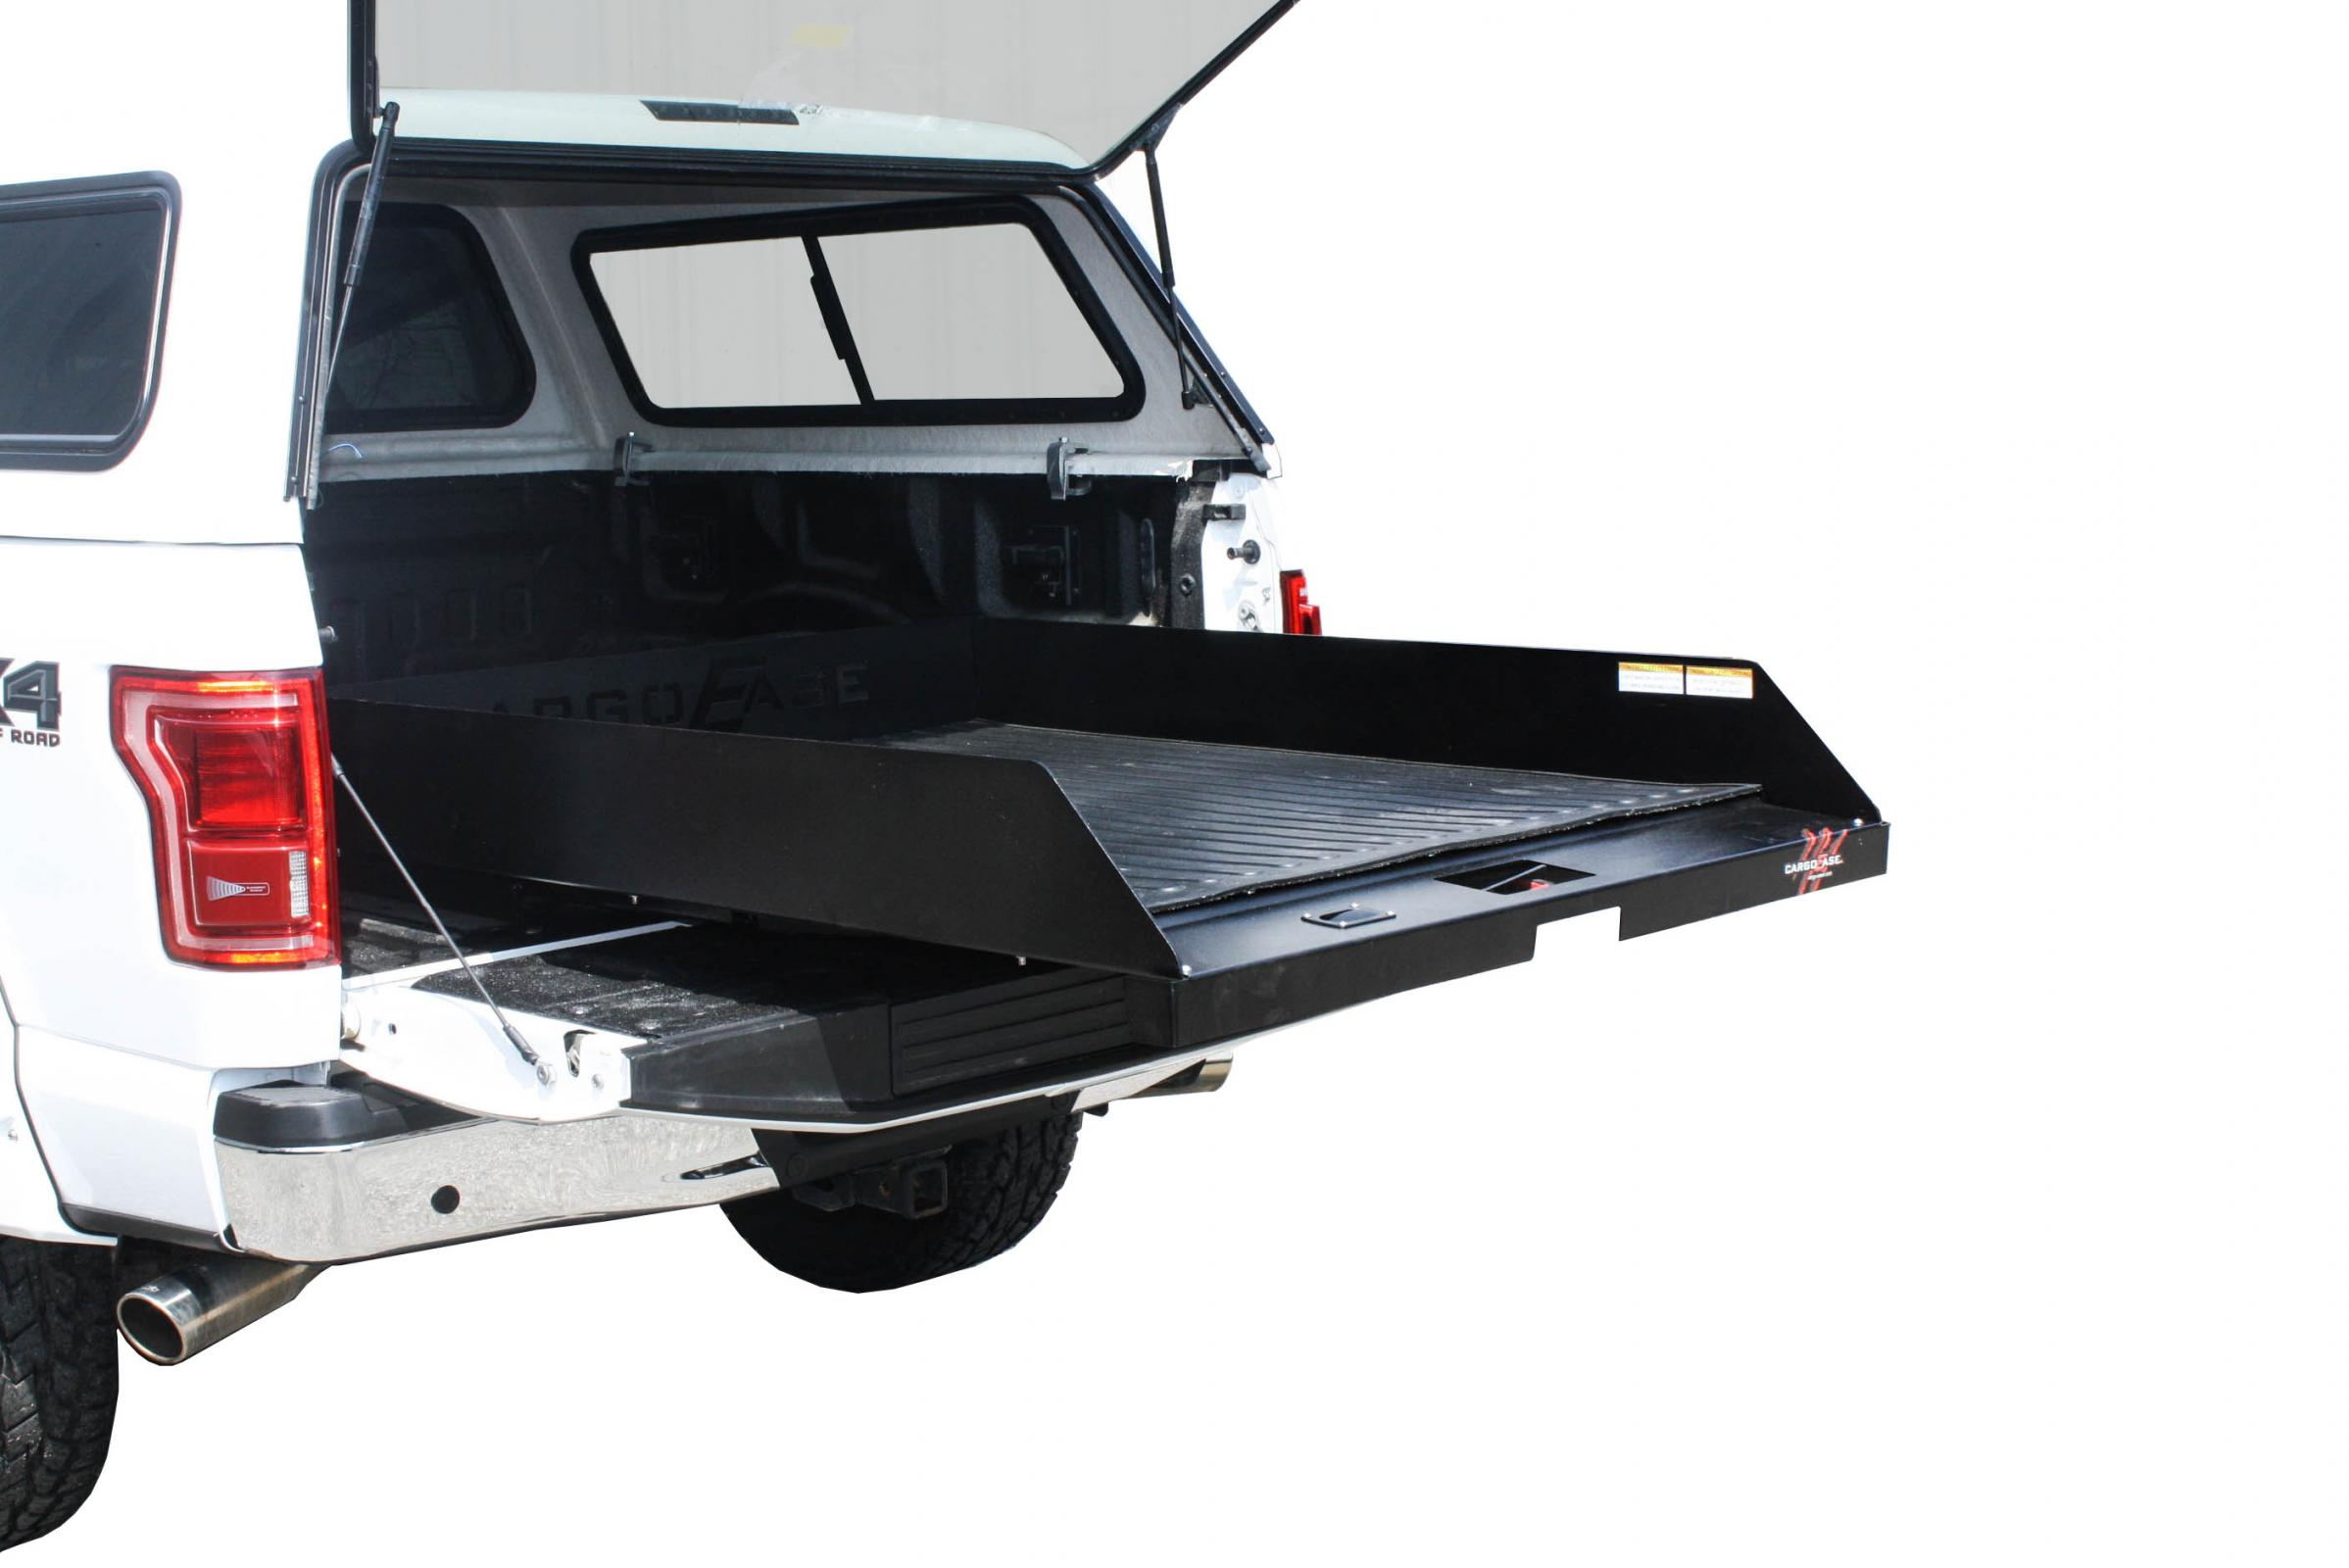 Cargo Ease Commercial 1500 Cargo Slide 1500 Lb Capacity 07-Pres Toyota Tundra Crew Max Short Bed